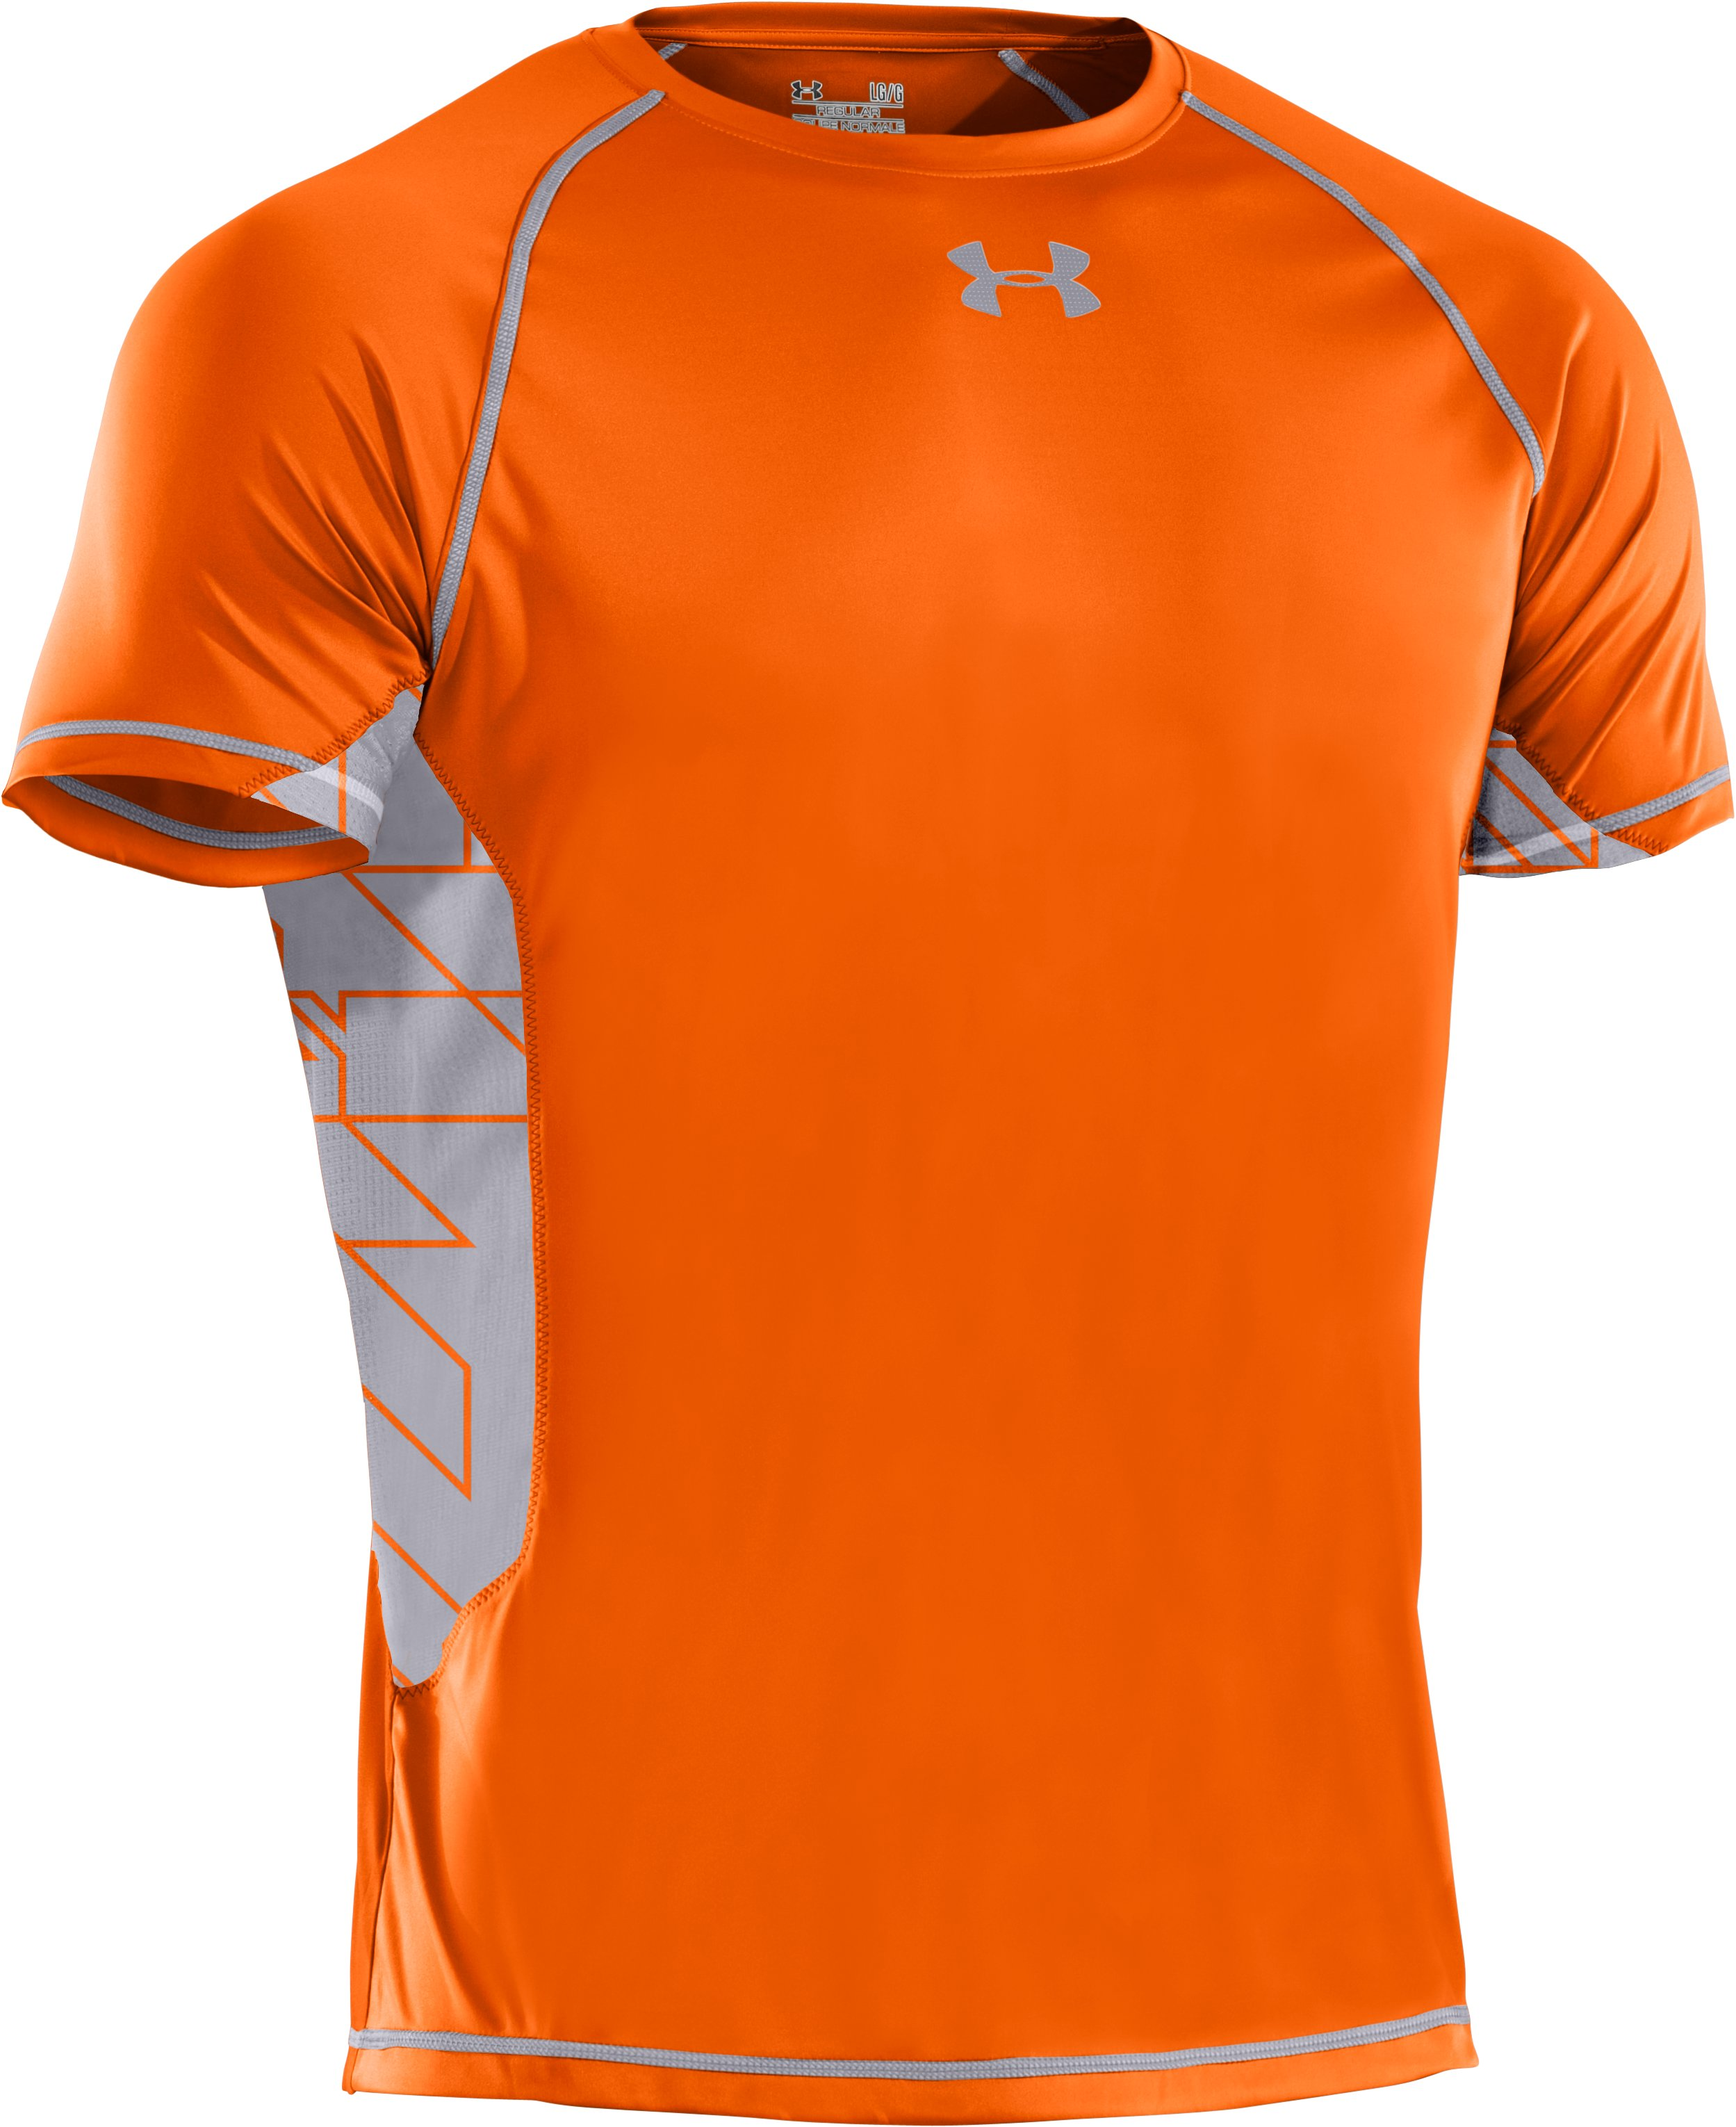 Men's HeatGear® Flyweight Short Sleeve, Vivid